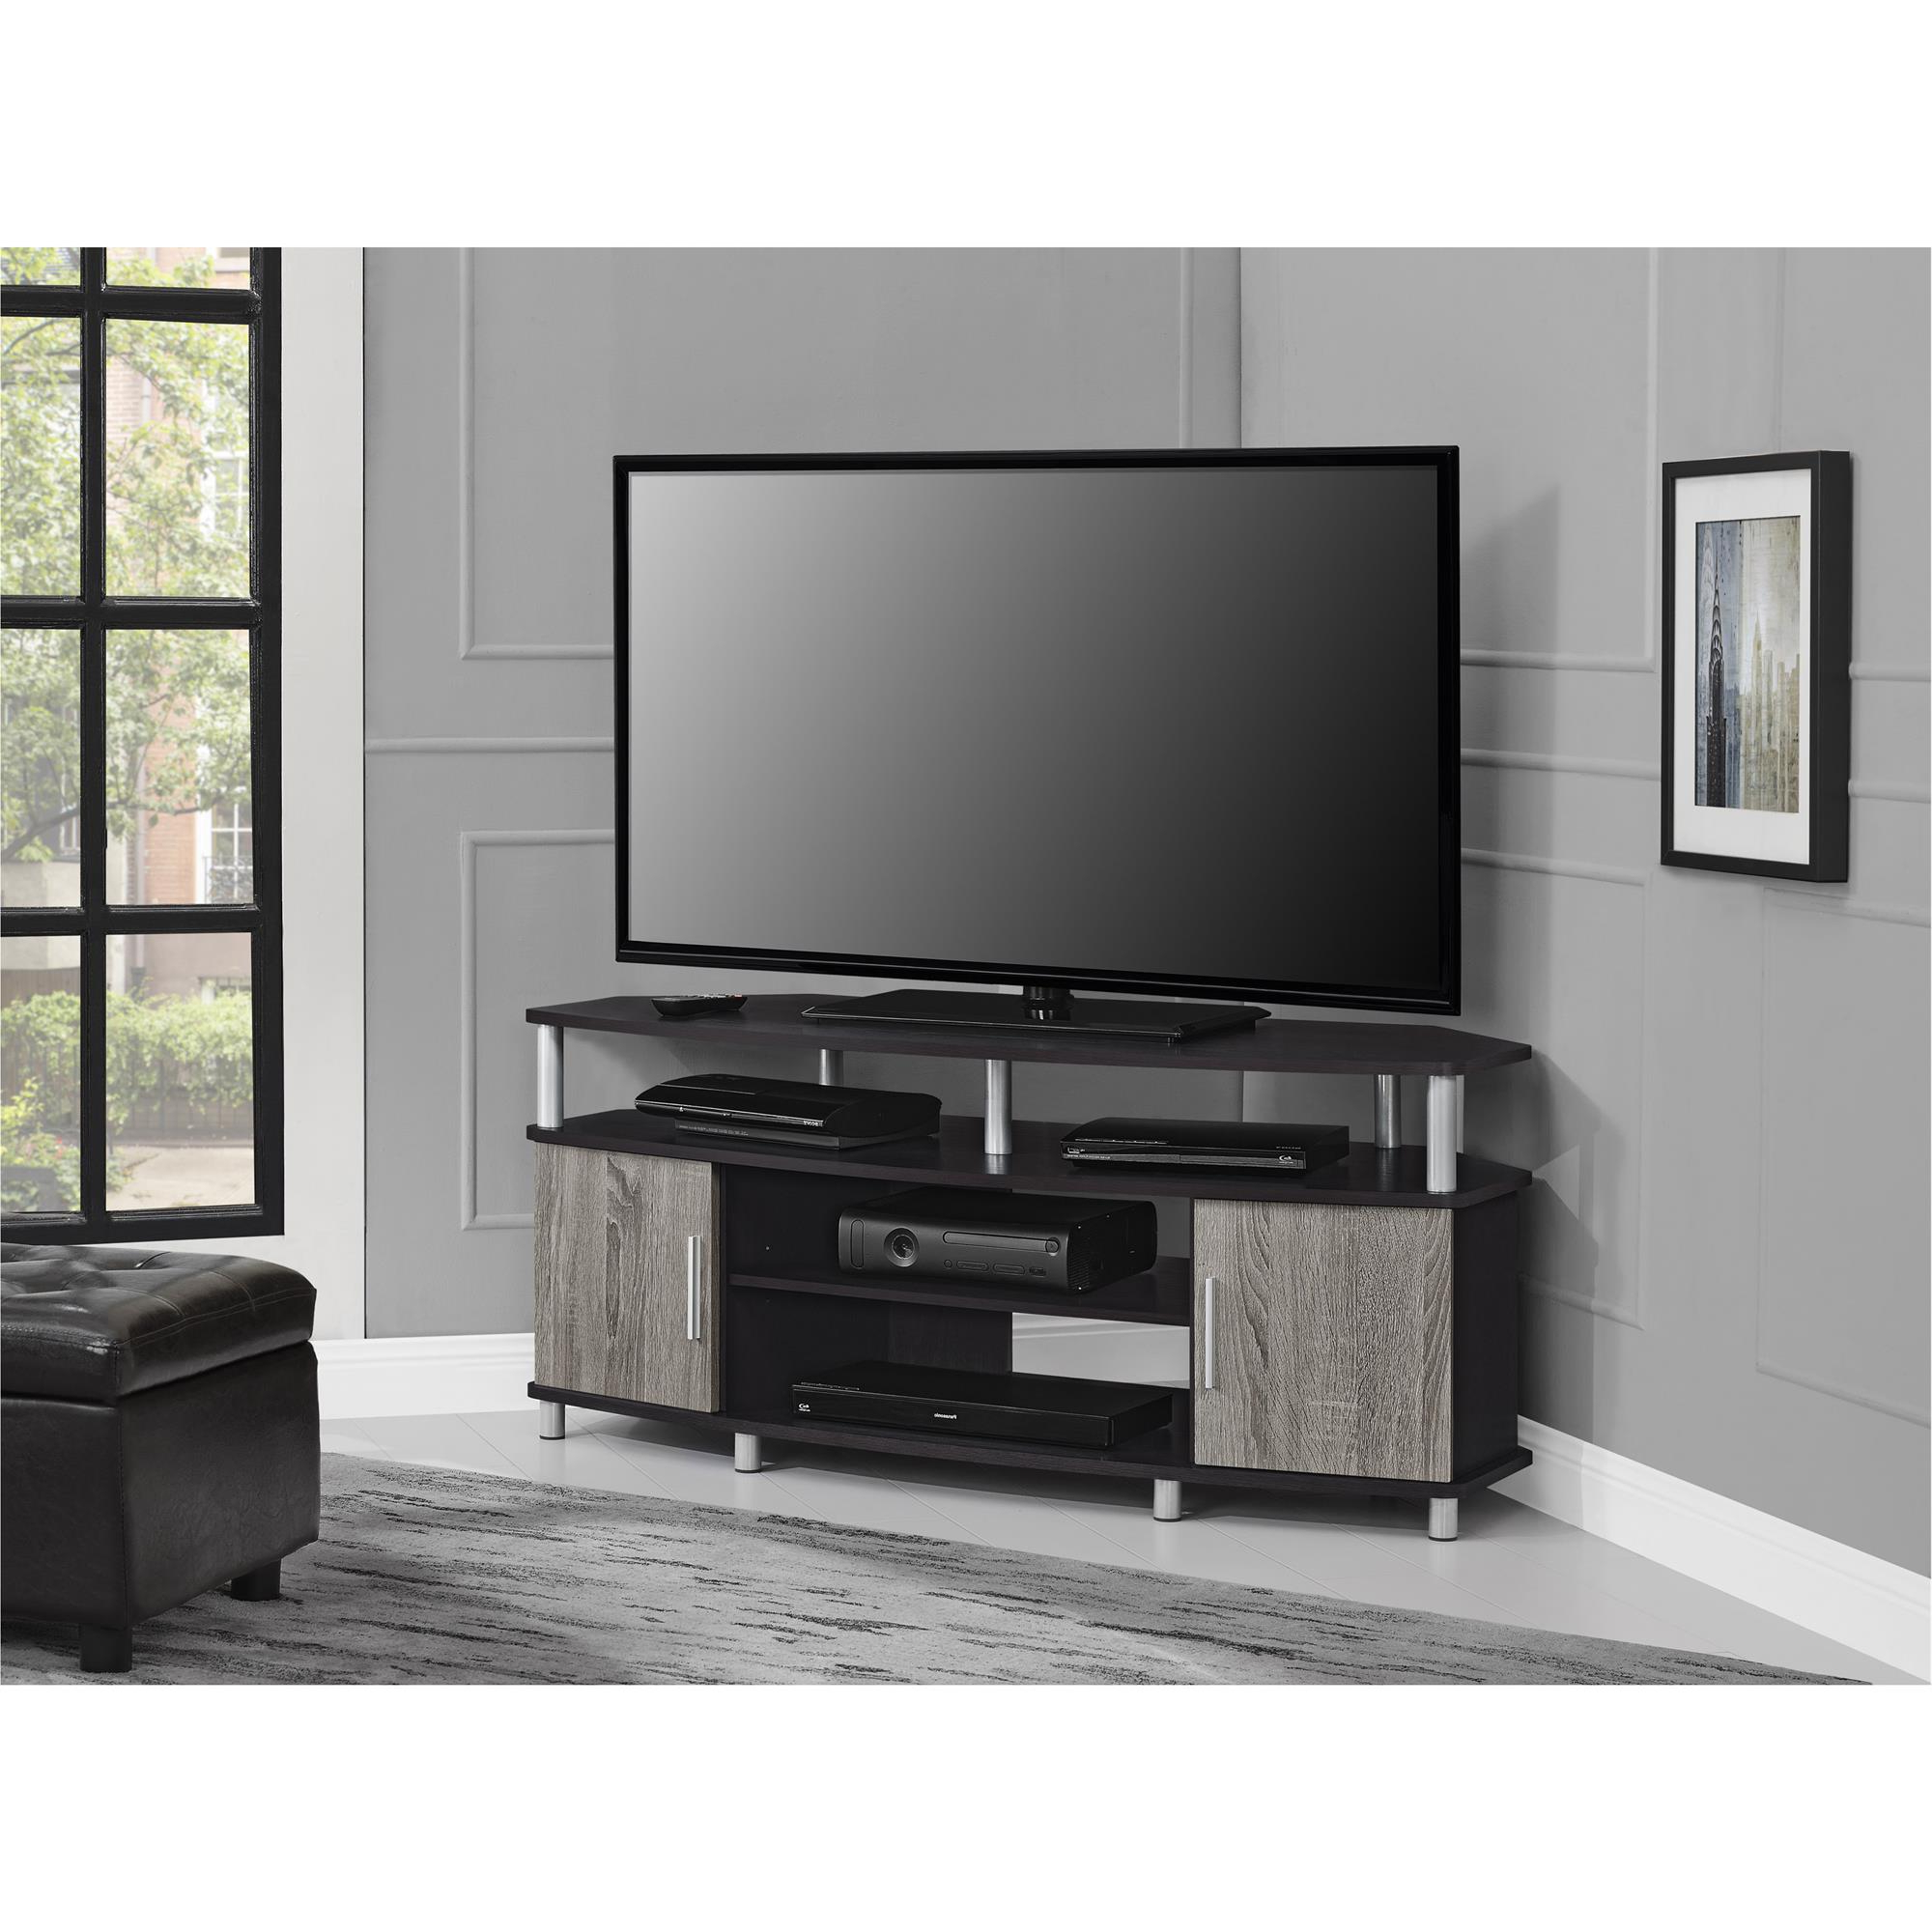 "24 Inch Corner Tv Stands Inside 2018 Ameriwood Home Carson Corner Tv Stand For Tvs Up To 50"" Wide, Black (View 4 of 20)"